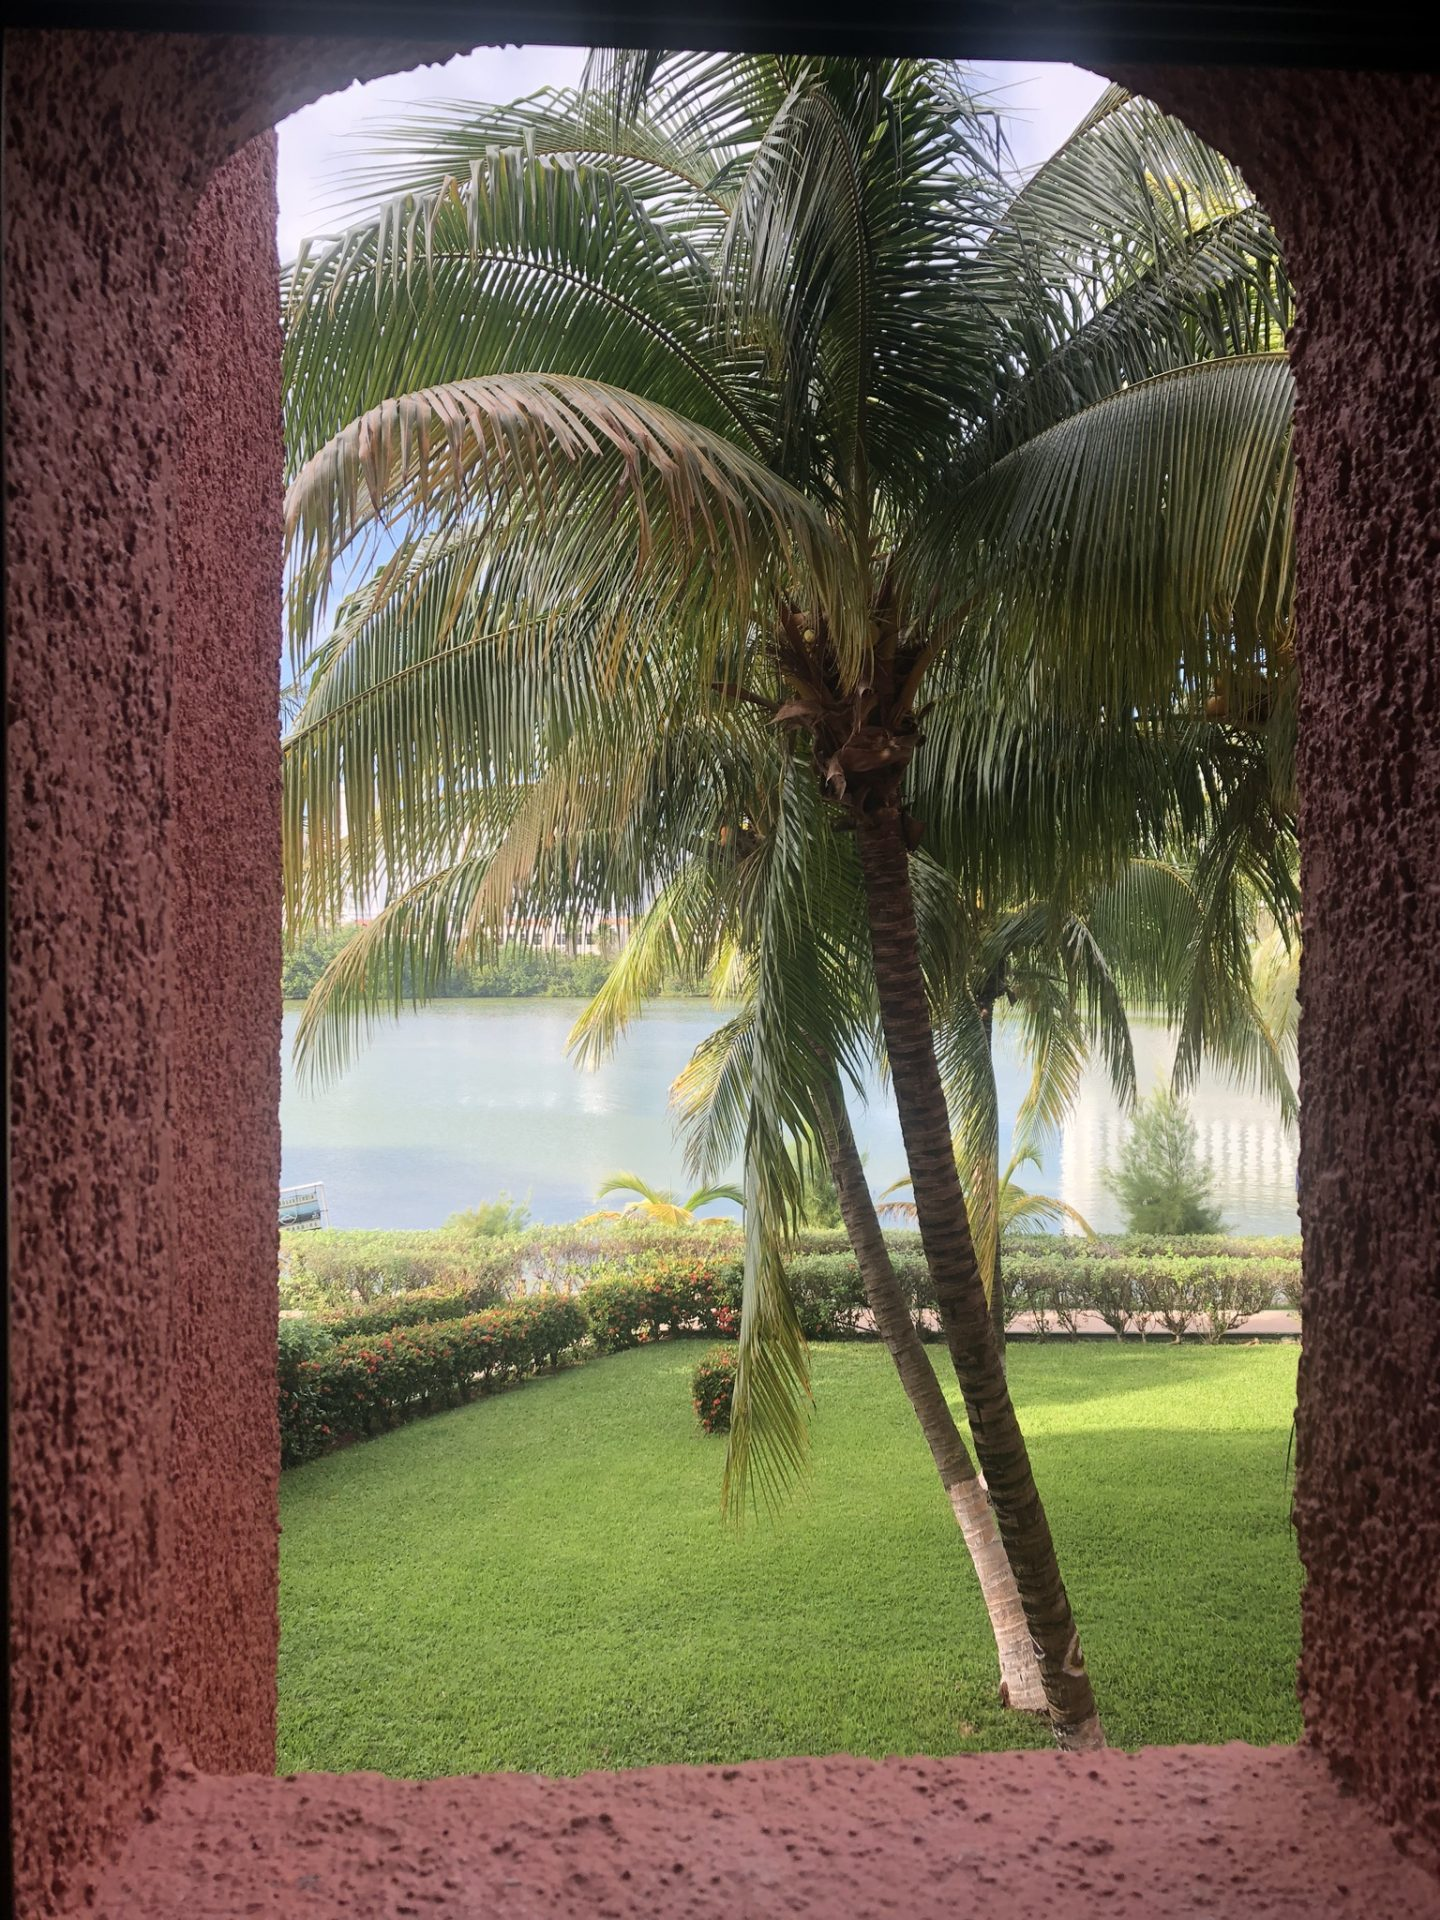 View from our room in Selina, Cancun, Mexico